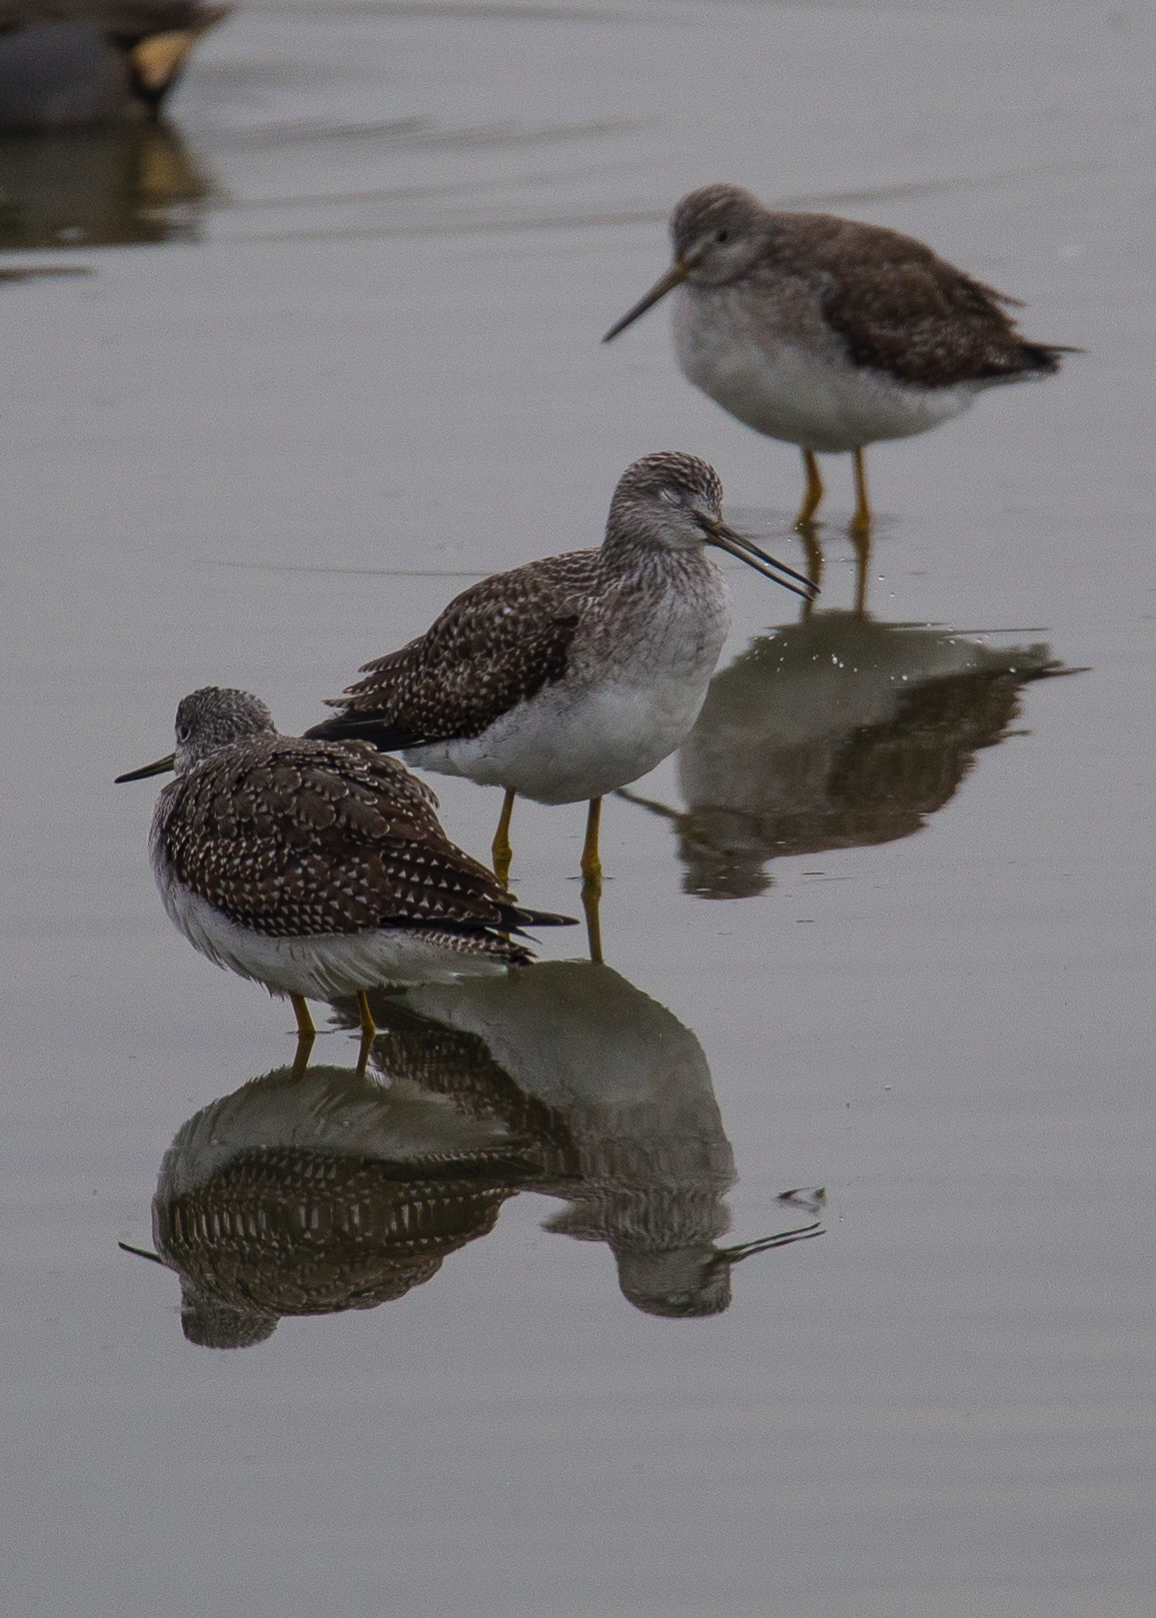 I think these are greater yellow legs, but I'm not 100% on that one.